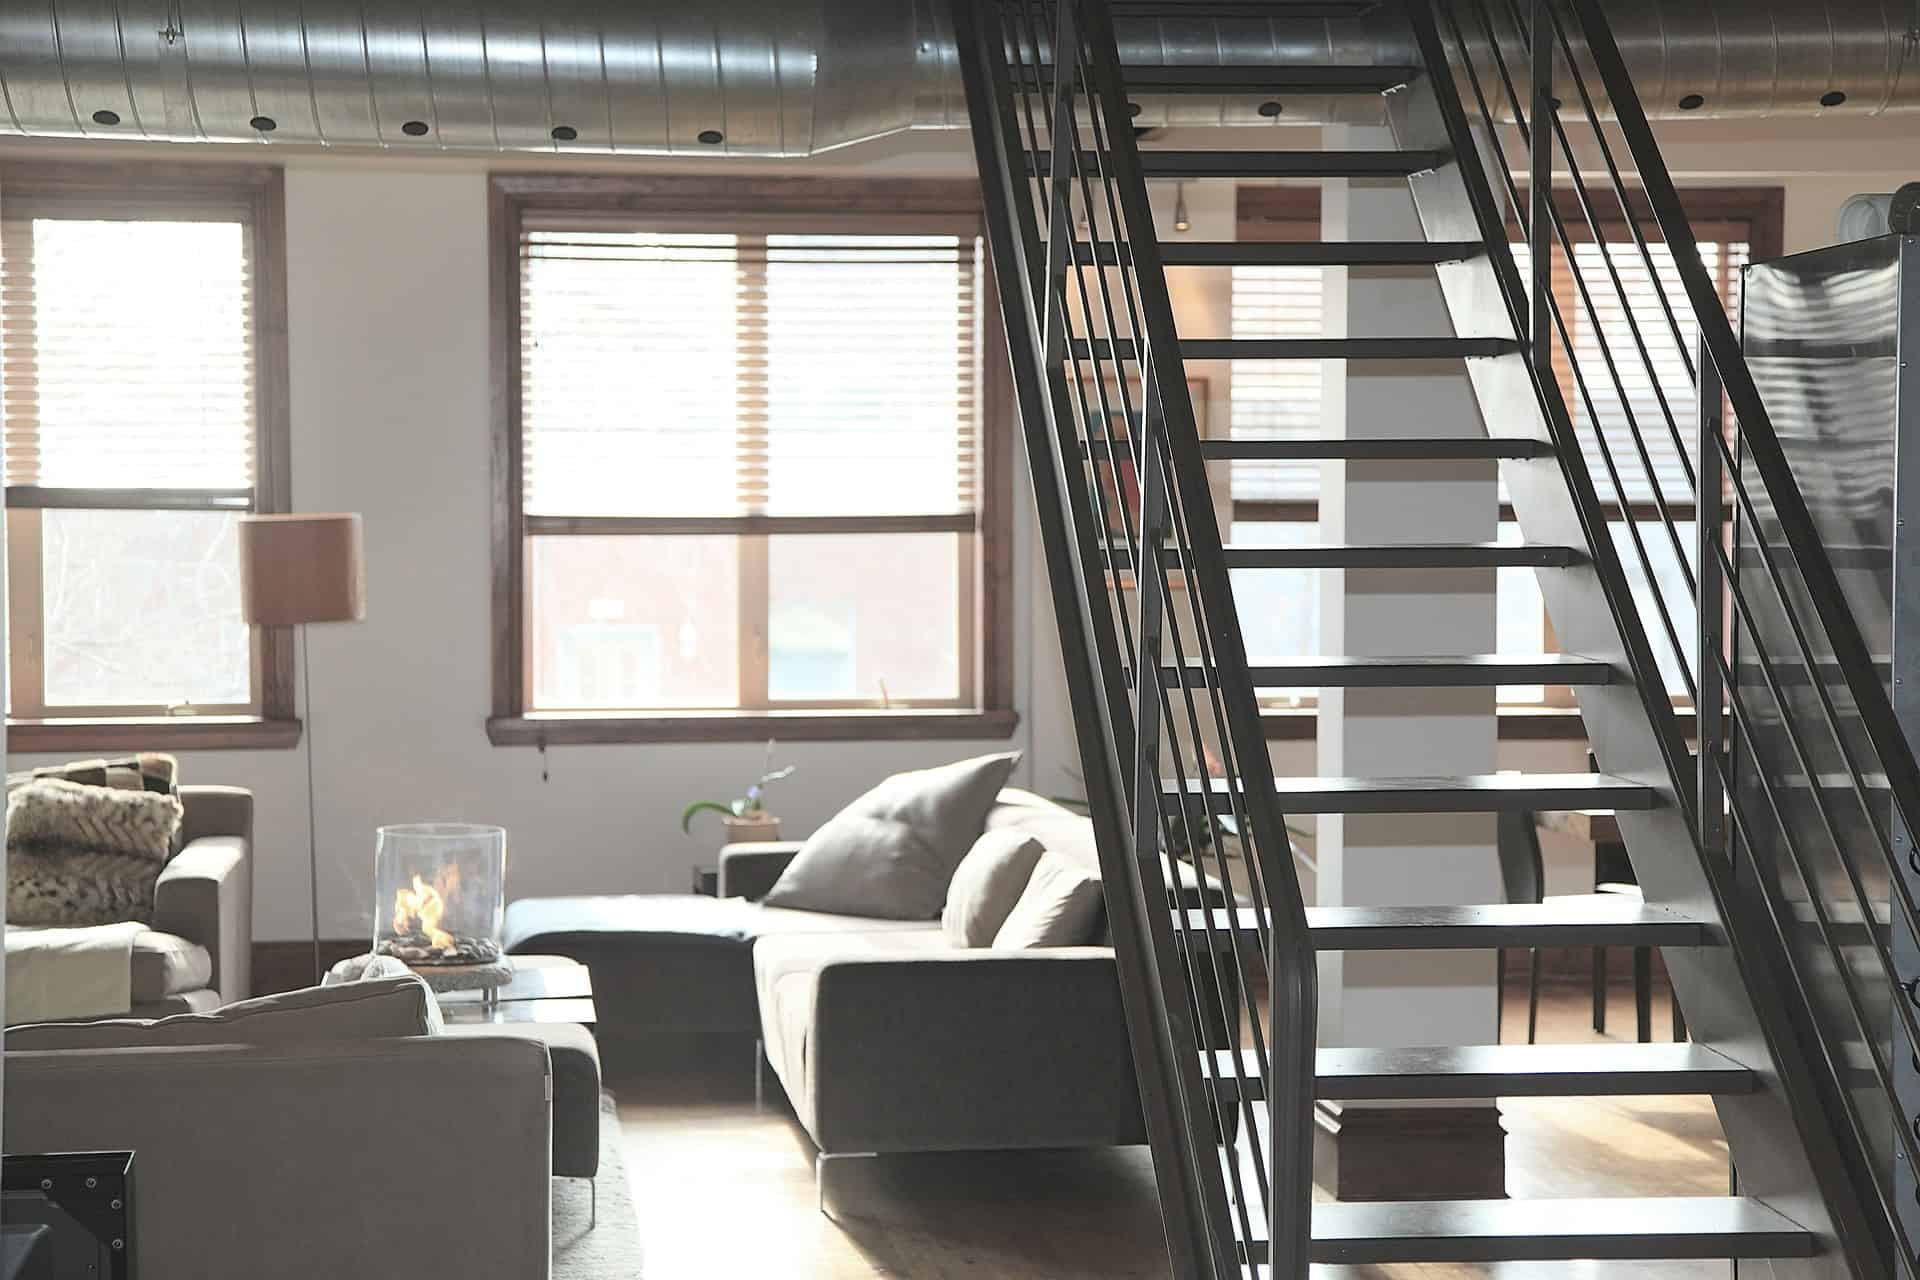 Best Airbnb management companies in London